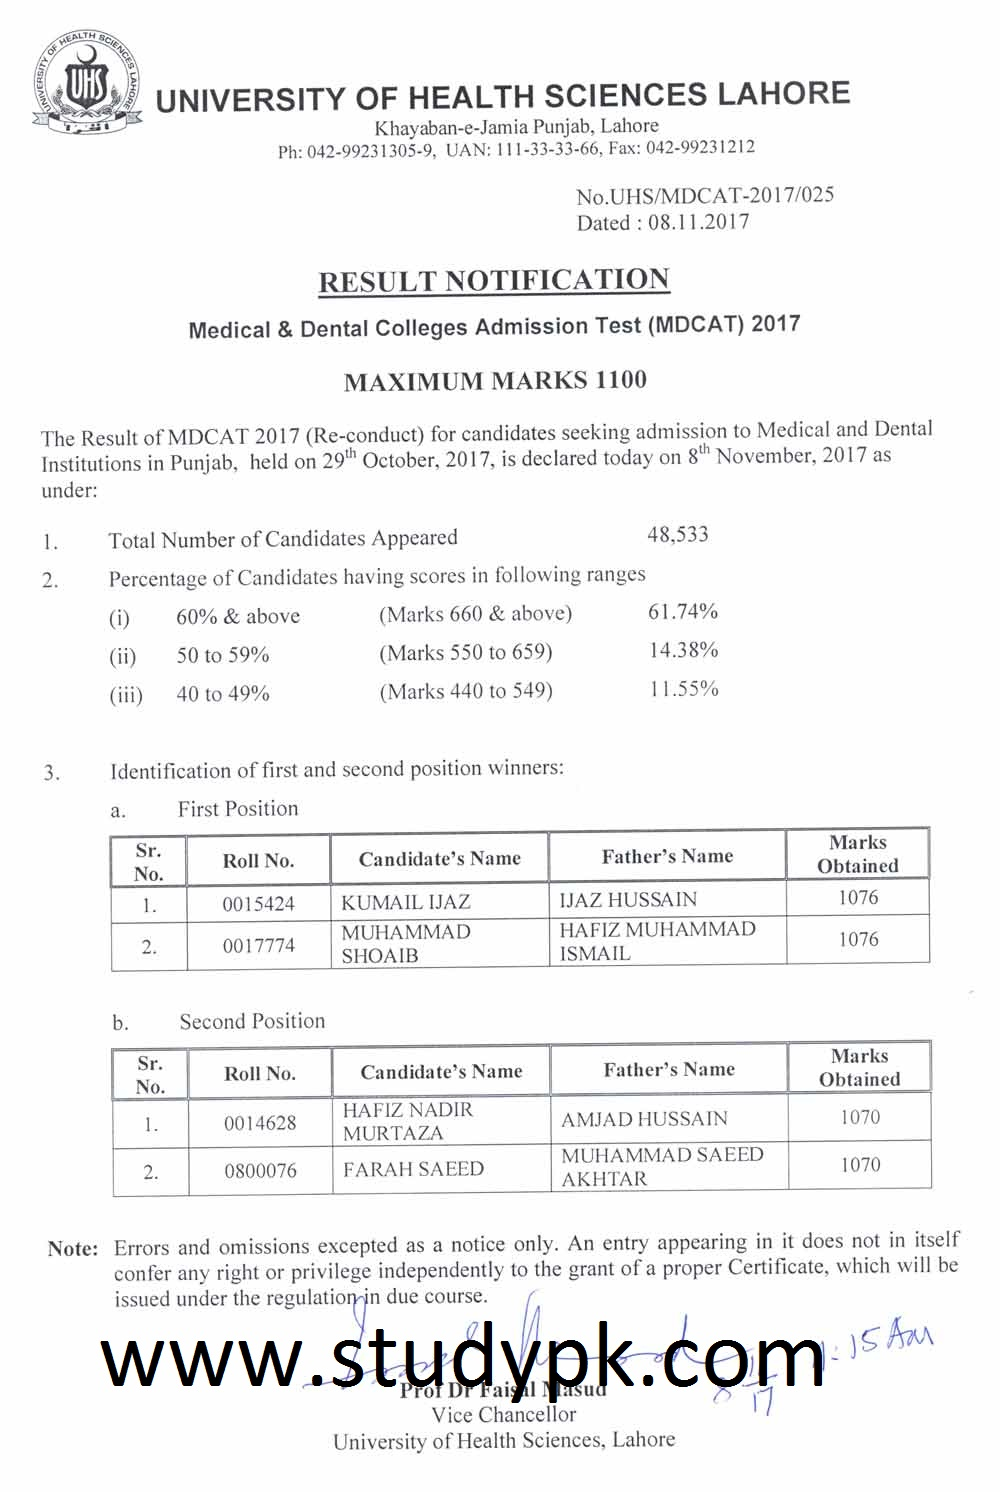 UHS Result of Entry Test MDCAT (Re-Conduct) 2017